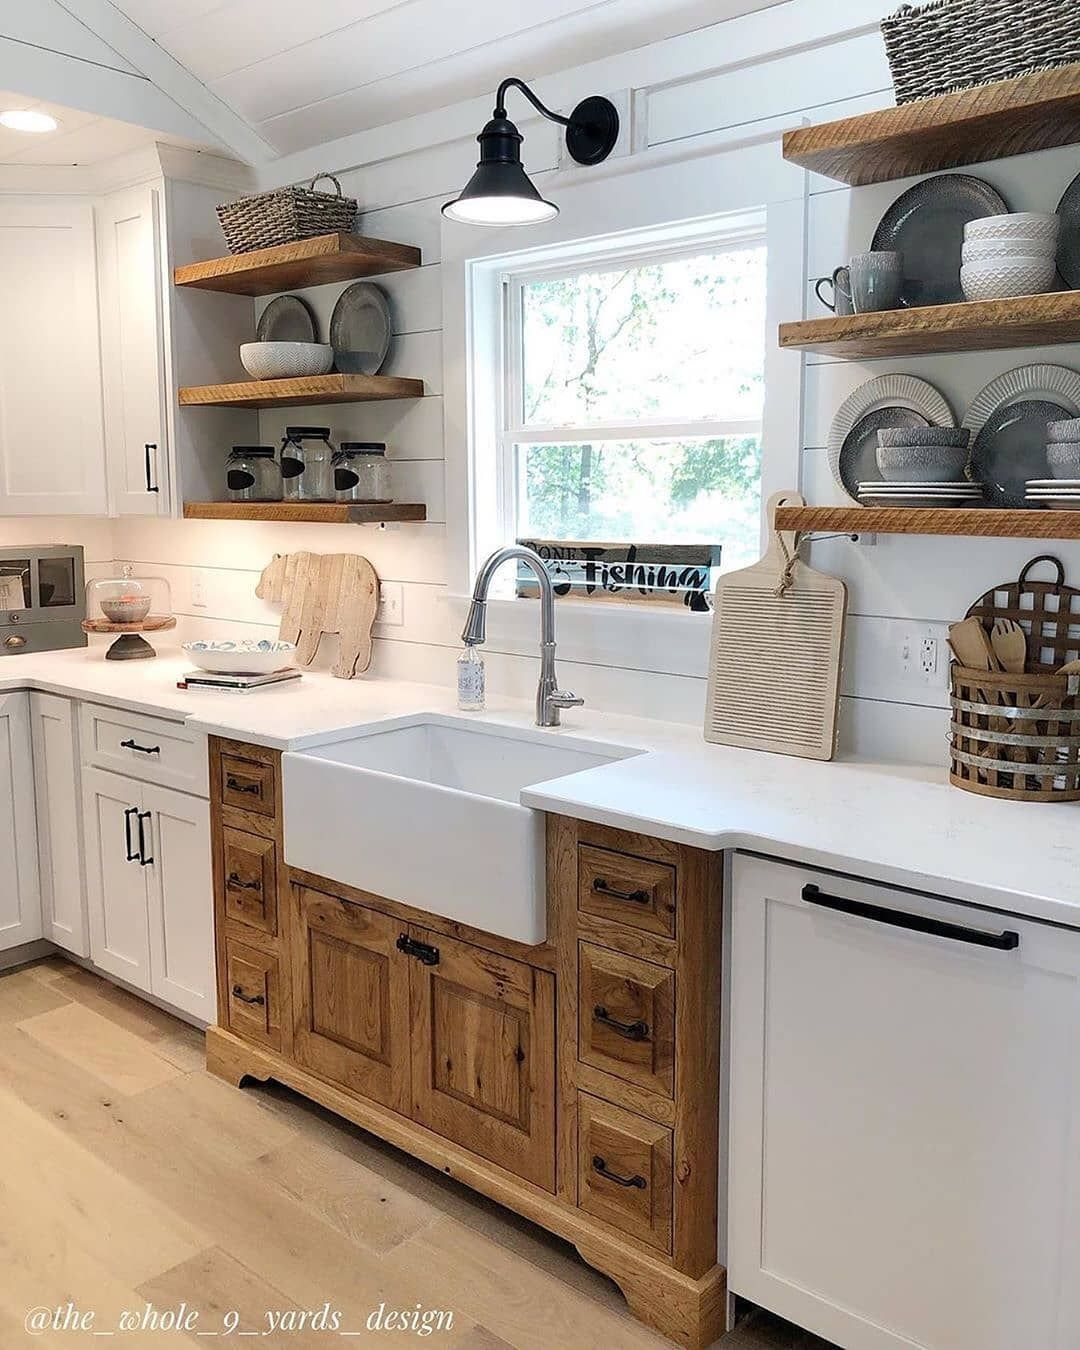 What Do You Think Of This Cute Farmhouse Kitchen We Really Like The Split Cabinets And Open Rustic Kitchen Design Farmhouse Kitchen Remodel Kitchen Remodel Farmhouse kitchen remodel ideas